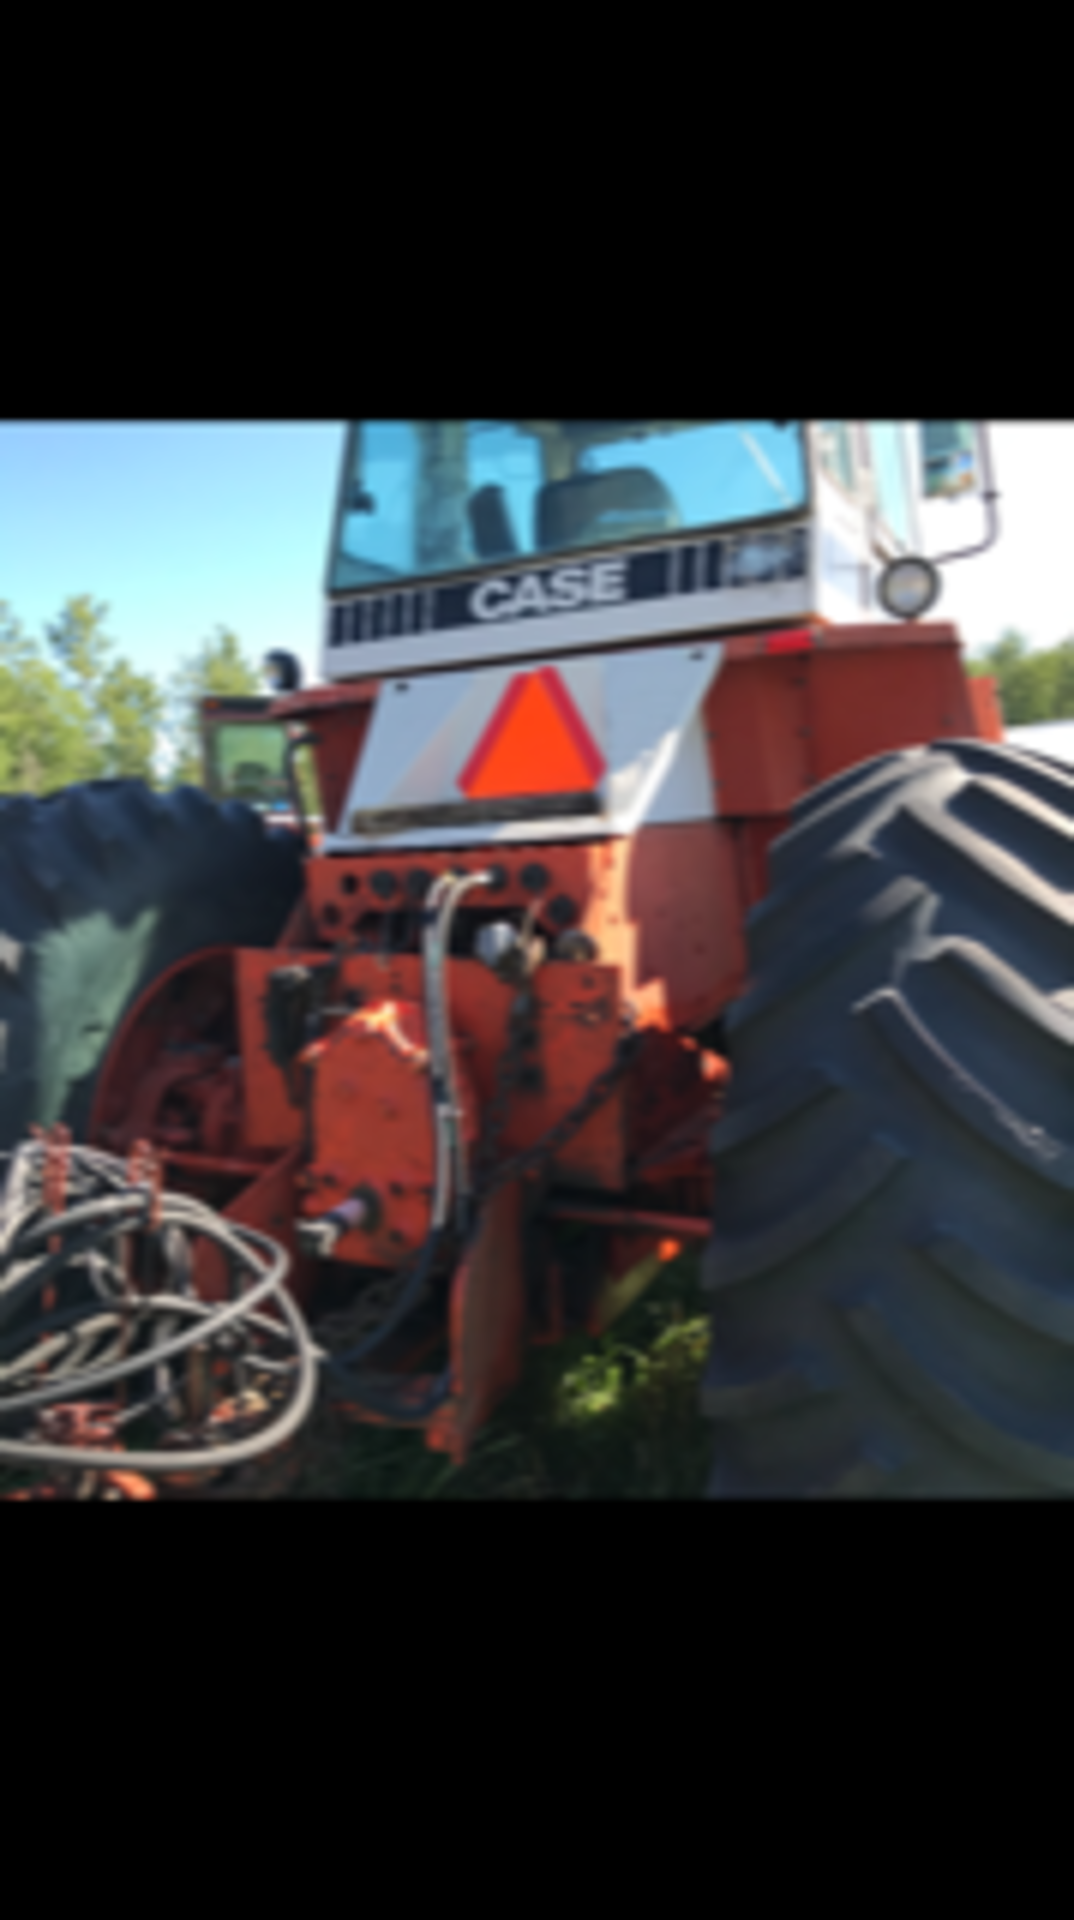 1984 Case Tractor 4690, 4wd, 5683 hrs showing sn: 10259565 - Image 4 of 4